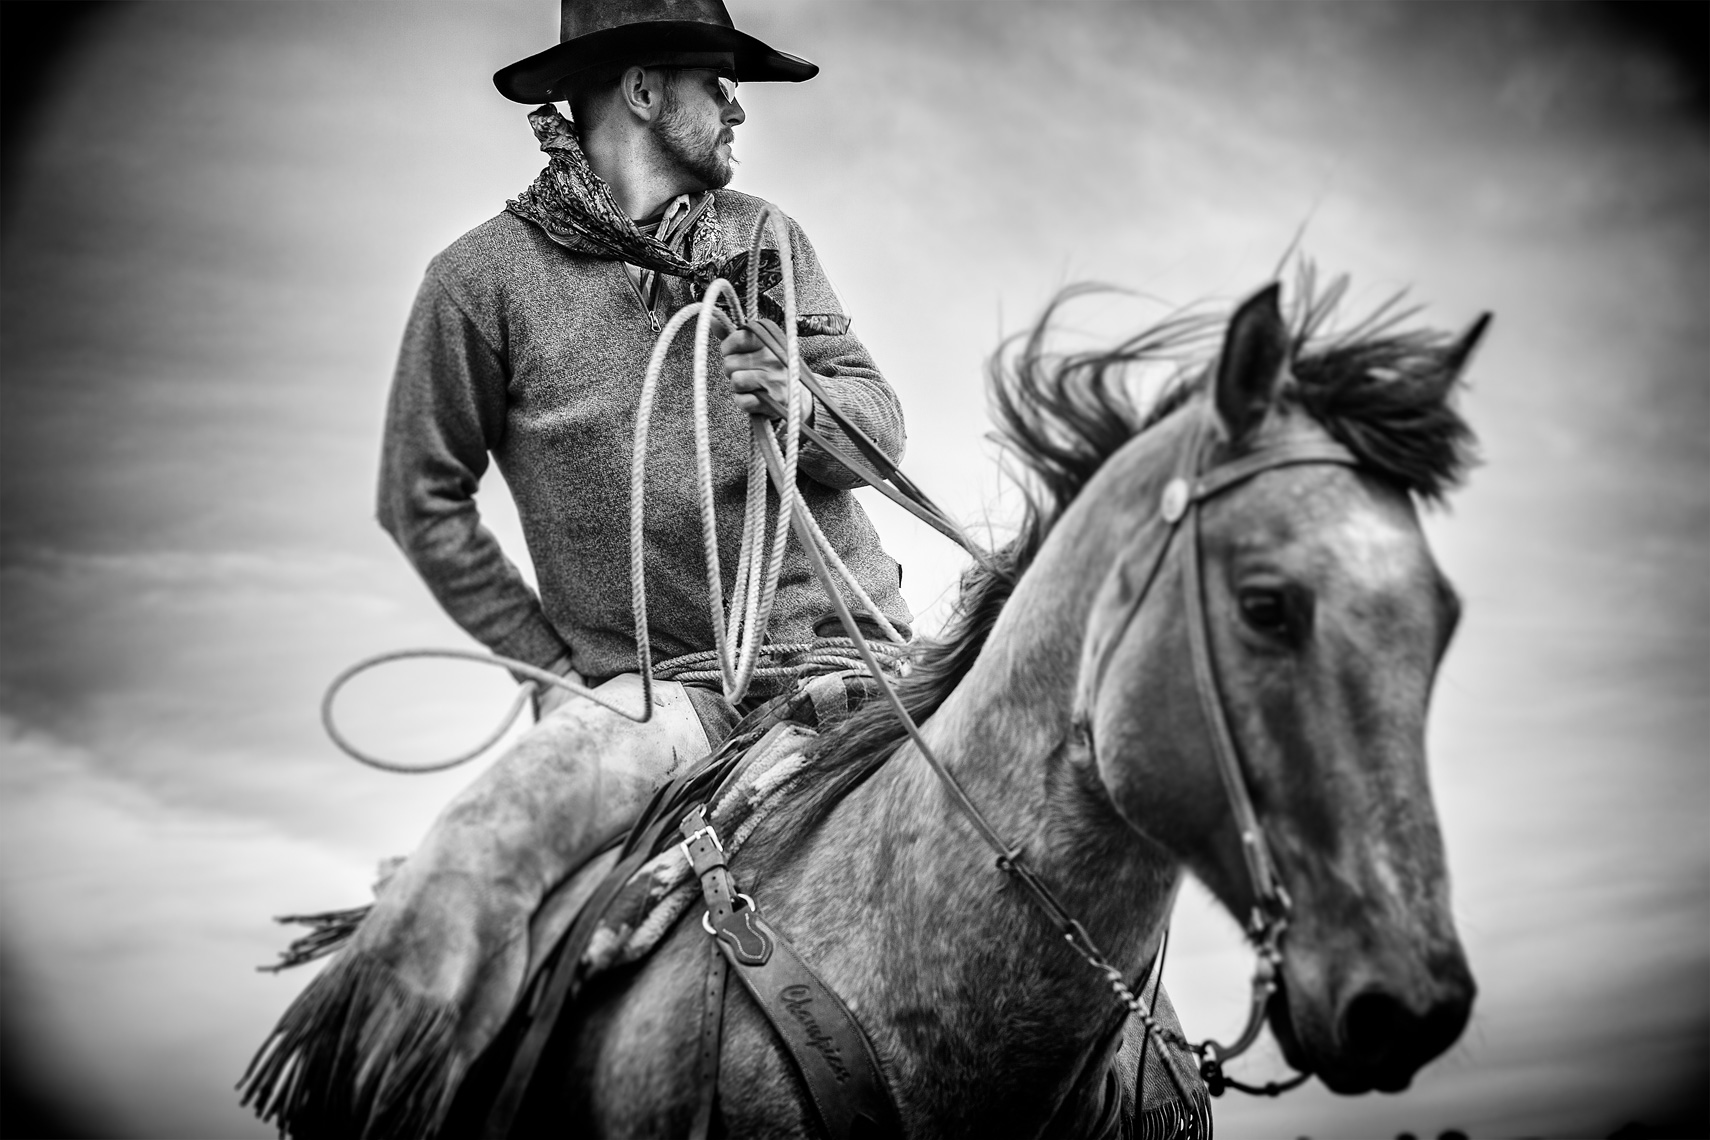 Cowboy Cattle Branding, Wilsal Montana by Dave White Phtographer 2